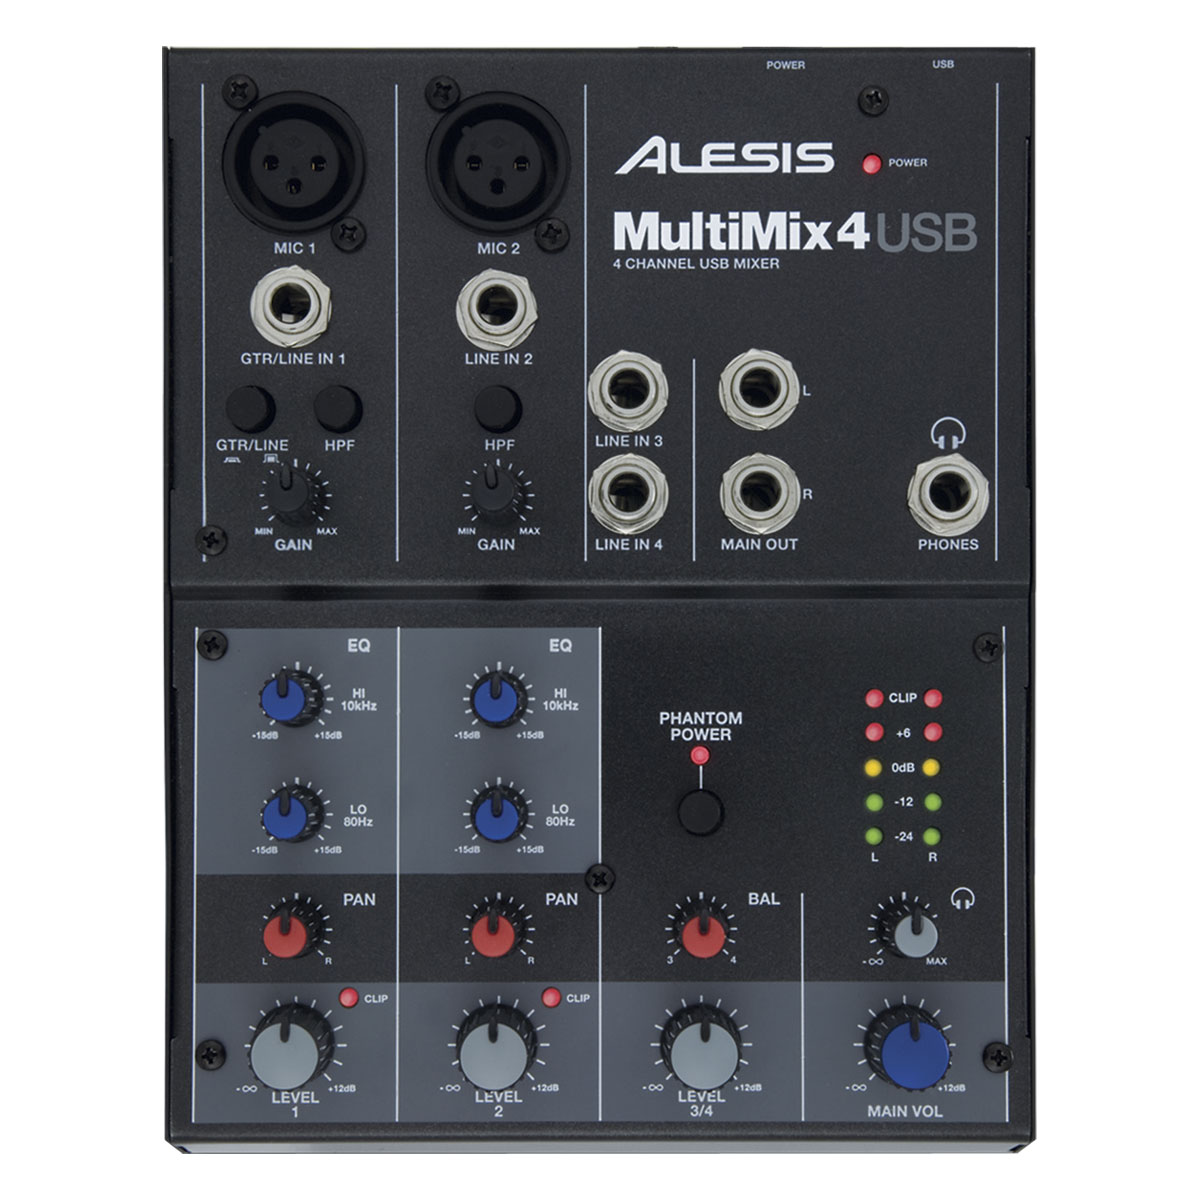 Alesis multimix 4 usb table de mixage alesis sur for Table de mixage xpress 6 keywood